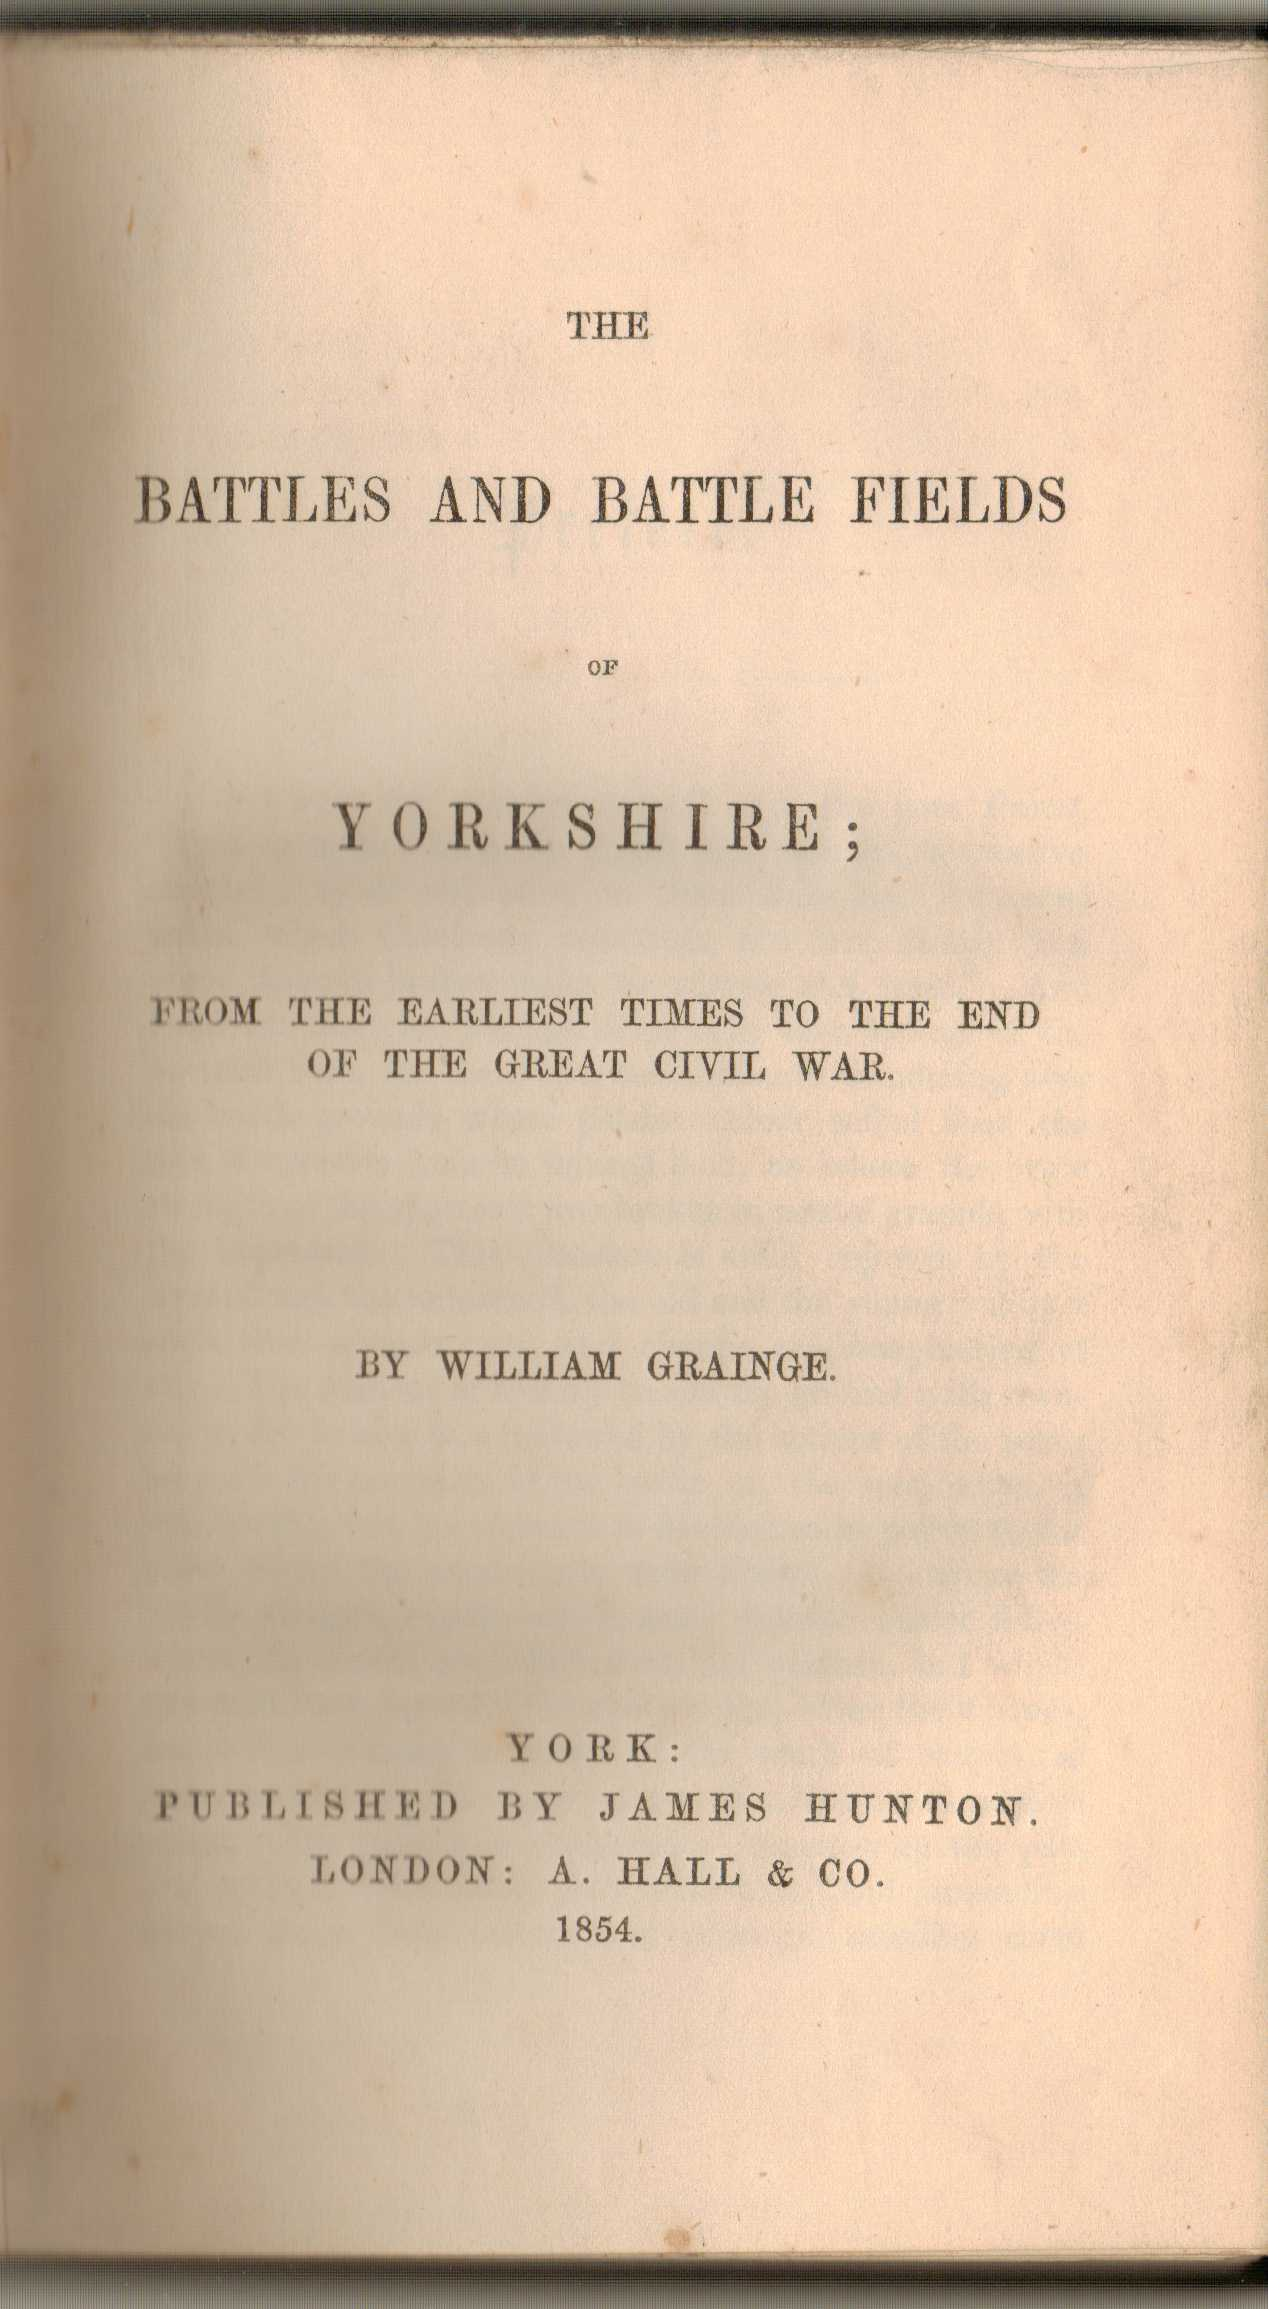 Image for The Battles and Battle Fields of Yorkshire; from the earliest times to then end of the great civil war